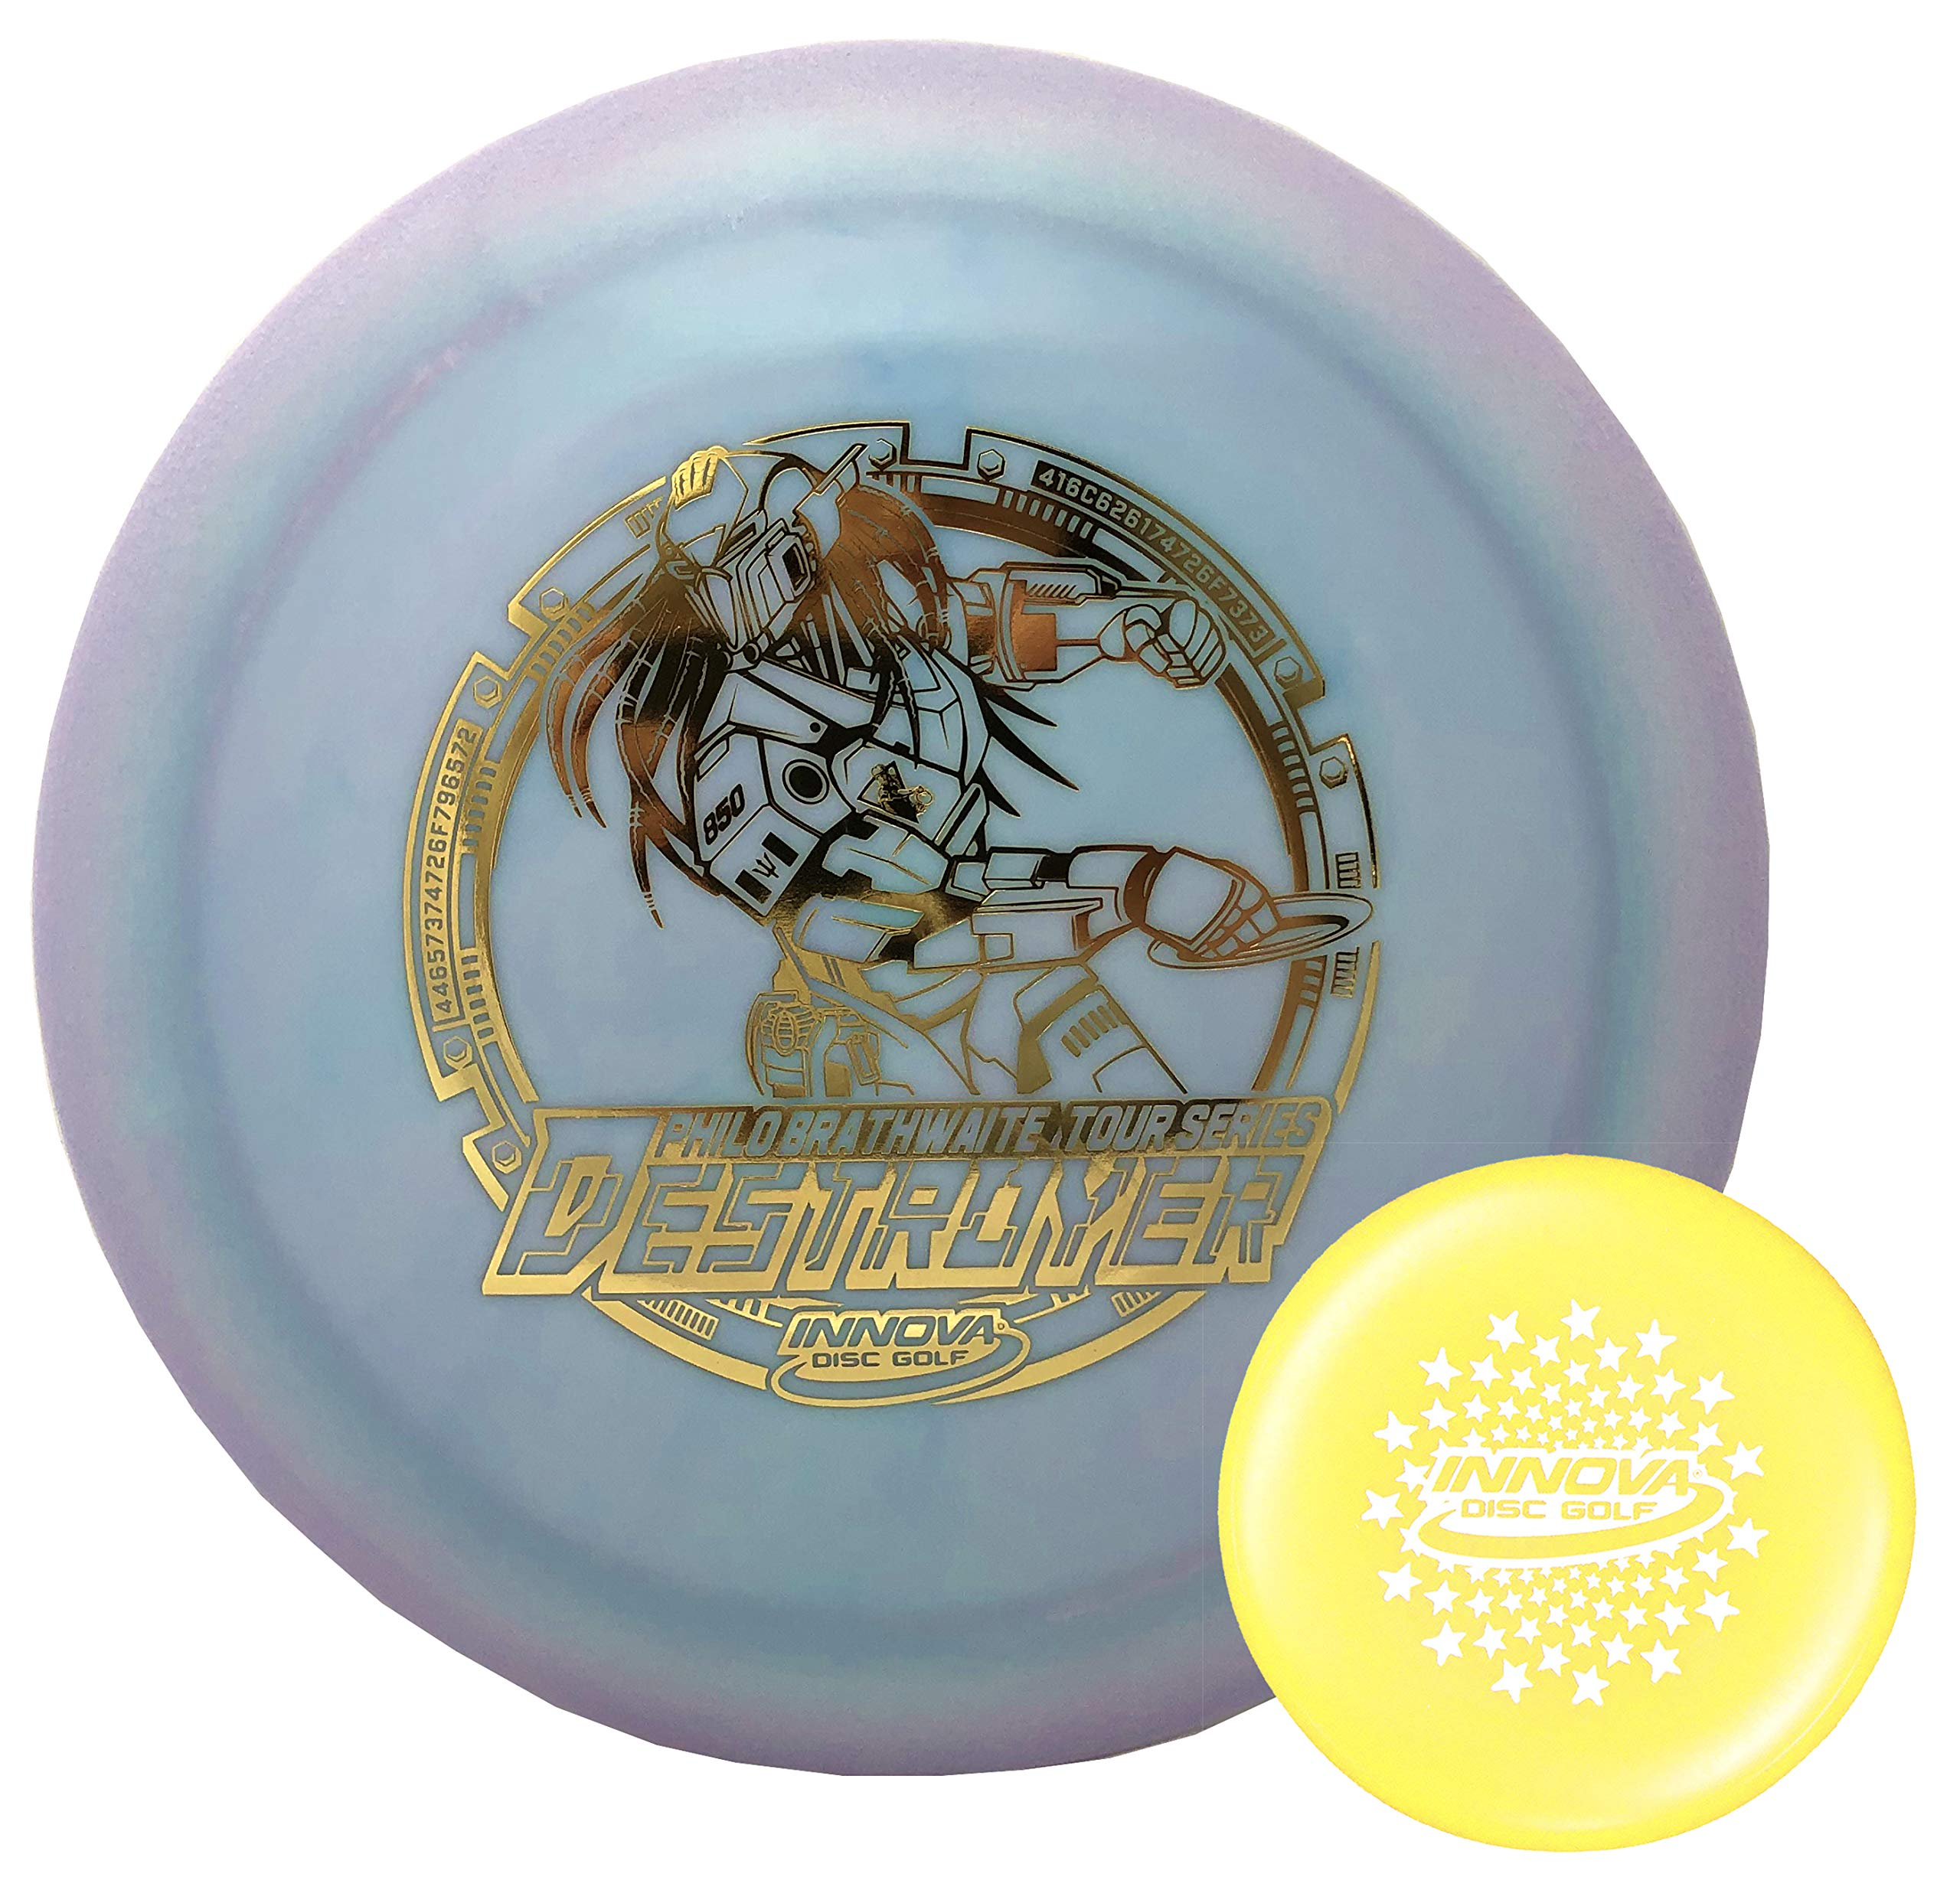 Innova Disc Golf Driver Star Color Glow Destroyer Philo Brathwaite Limited Edition 2019 Tour Series with Limited Edition Stars Stamp Innova Mini 165-169g Colors Will Vary by Innova Disc